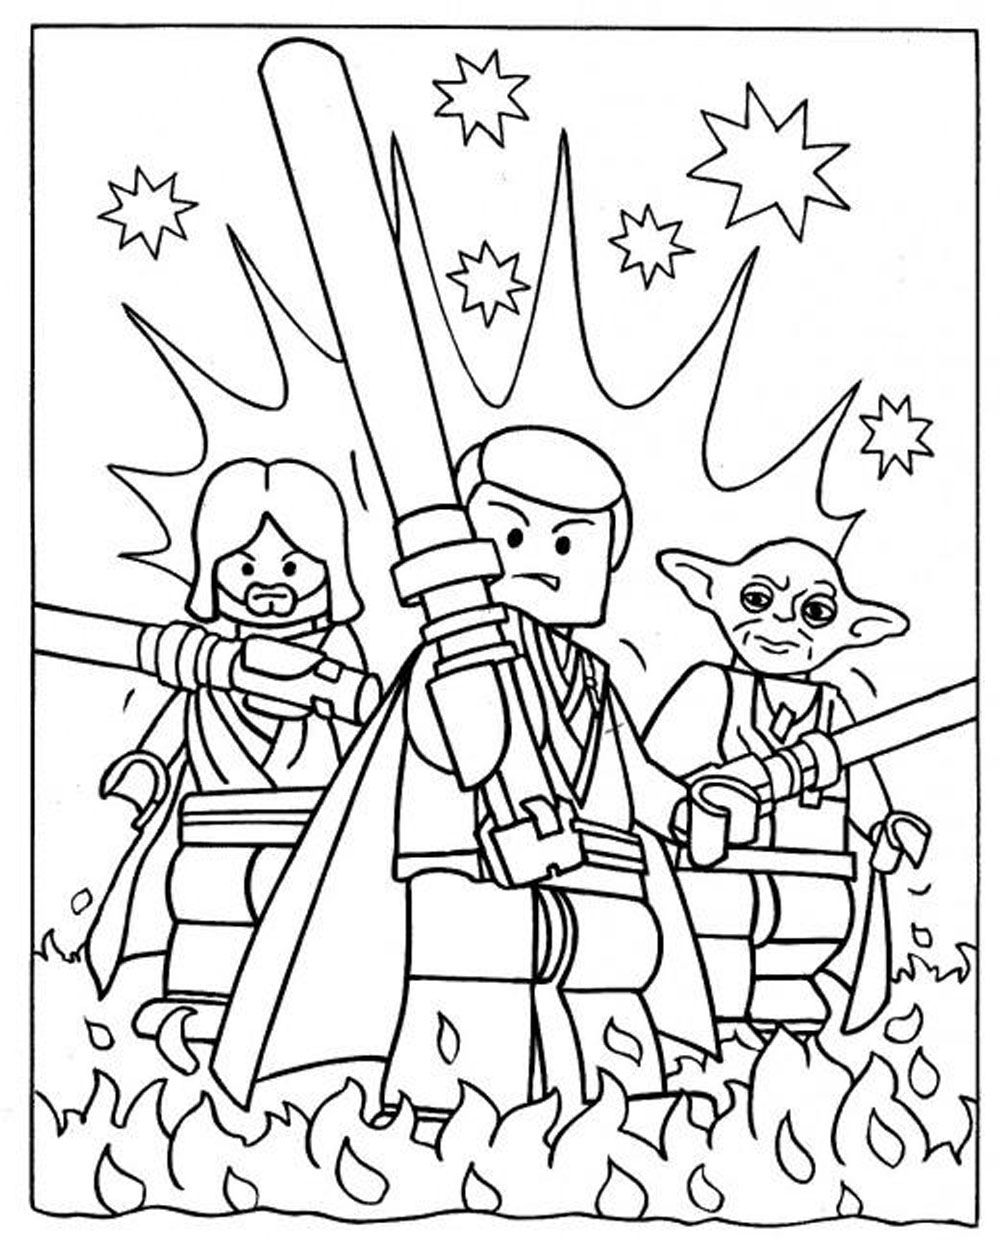 - Lego Star Wars Printable - Coloring Pages For Kids And For Adults